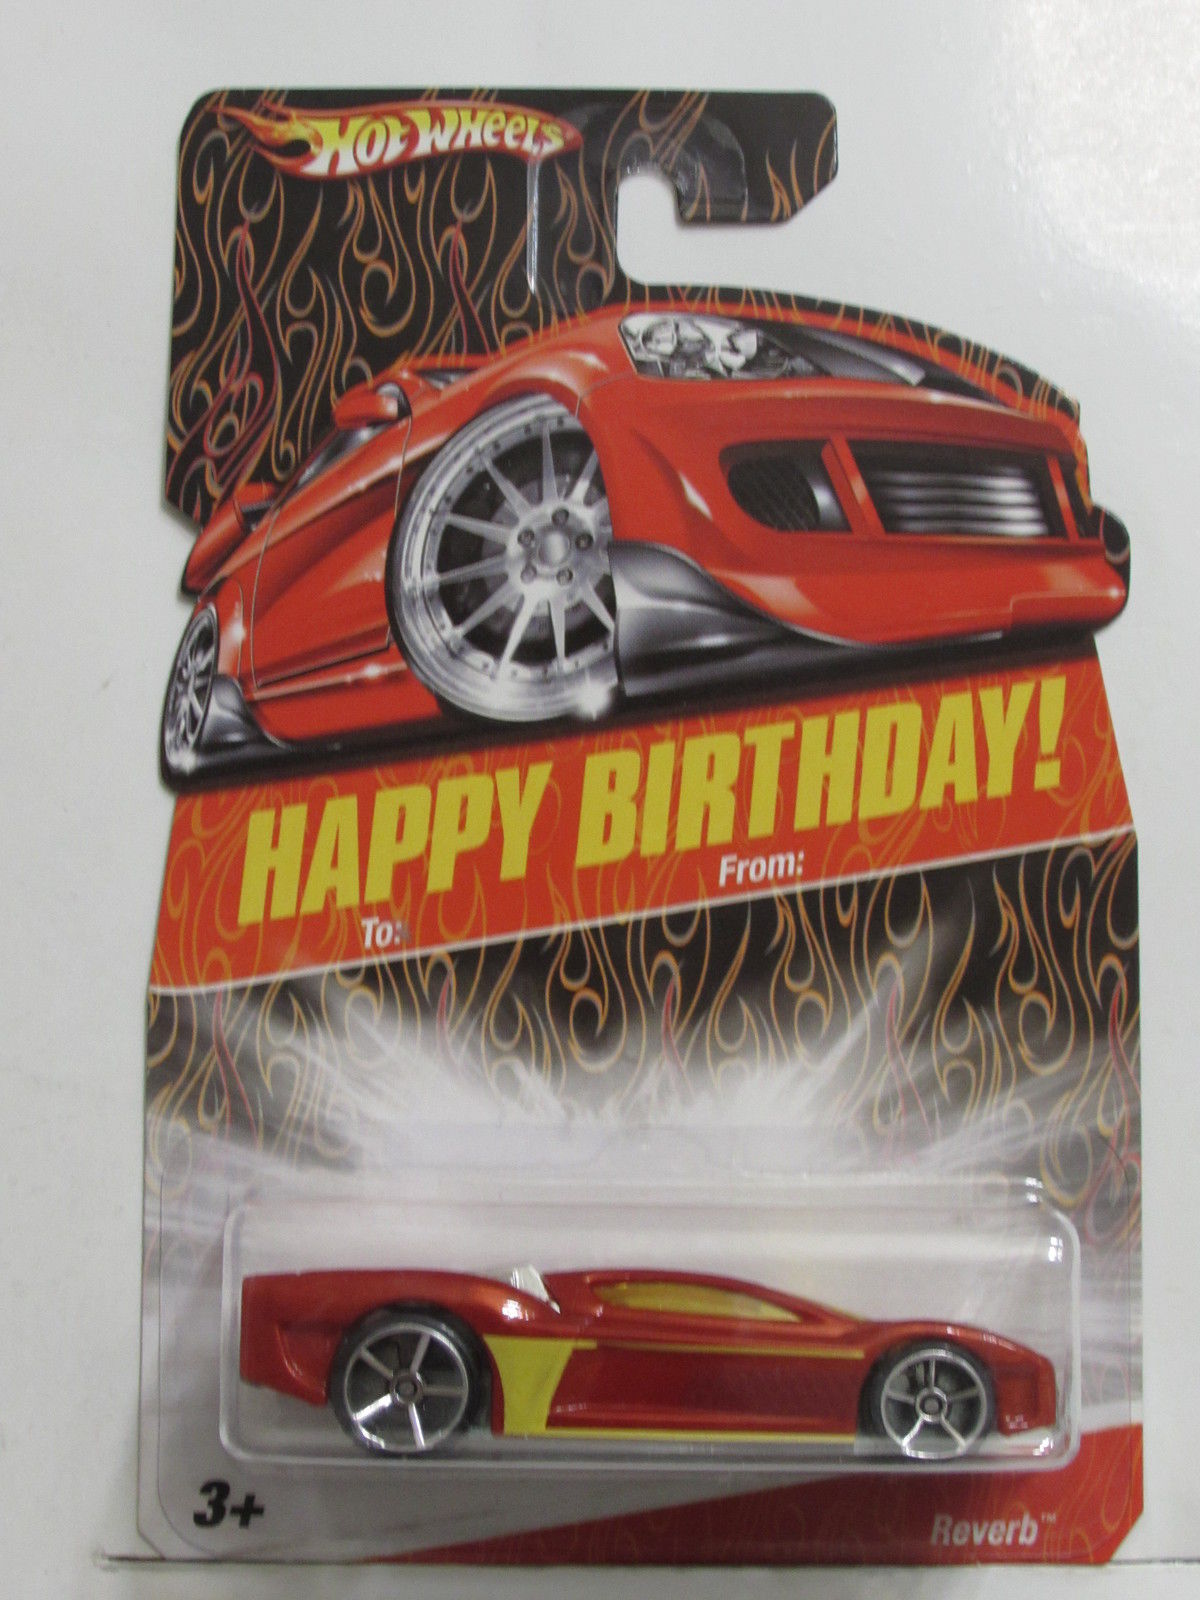 HOT WHEELS HAPPY BIRTHDAY REVERB RED